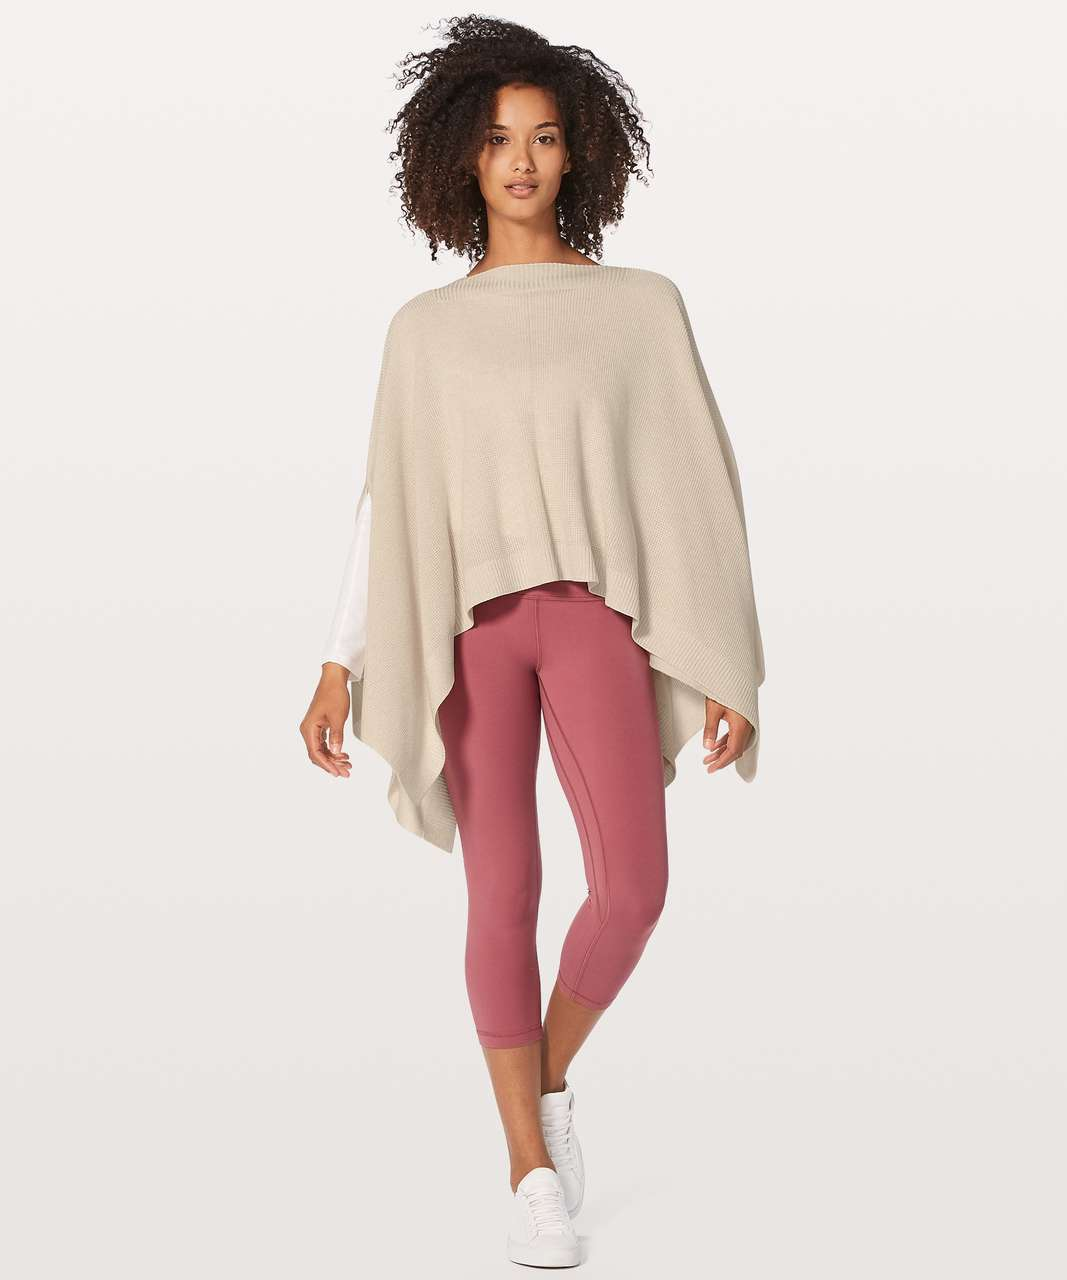 Lululemon Forward Flow Cape - Heathered Angel Wing